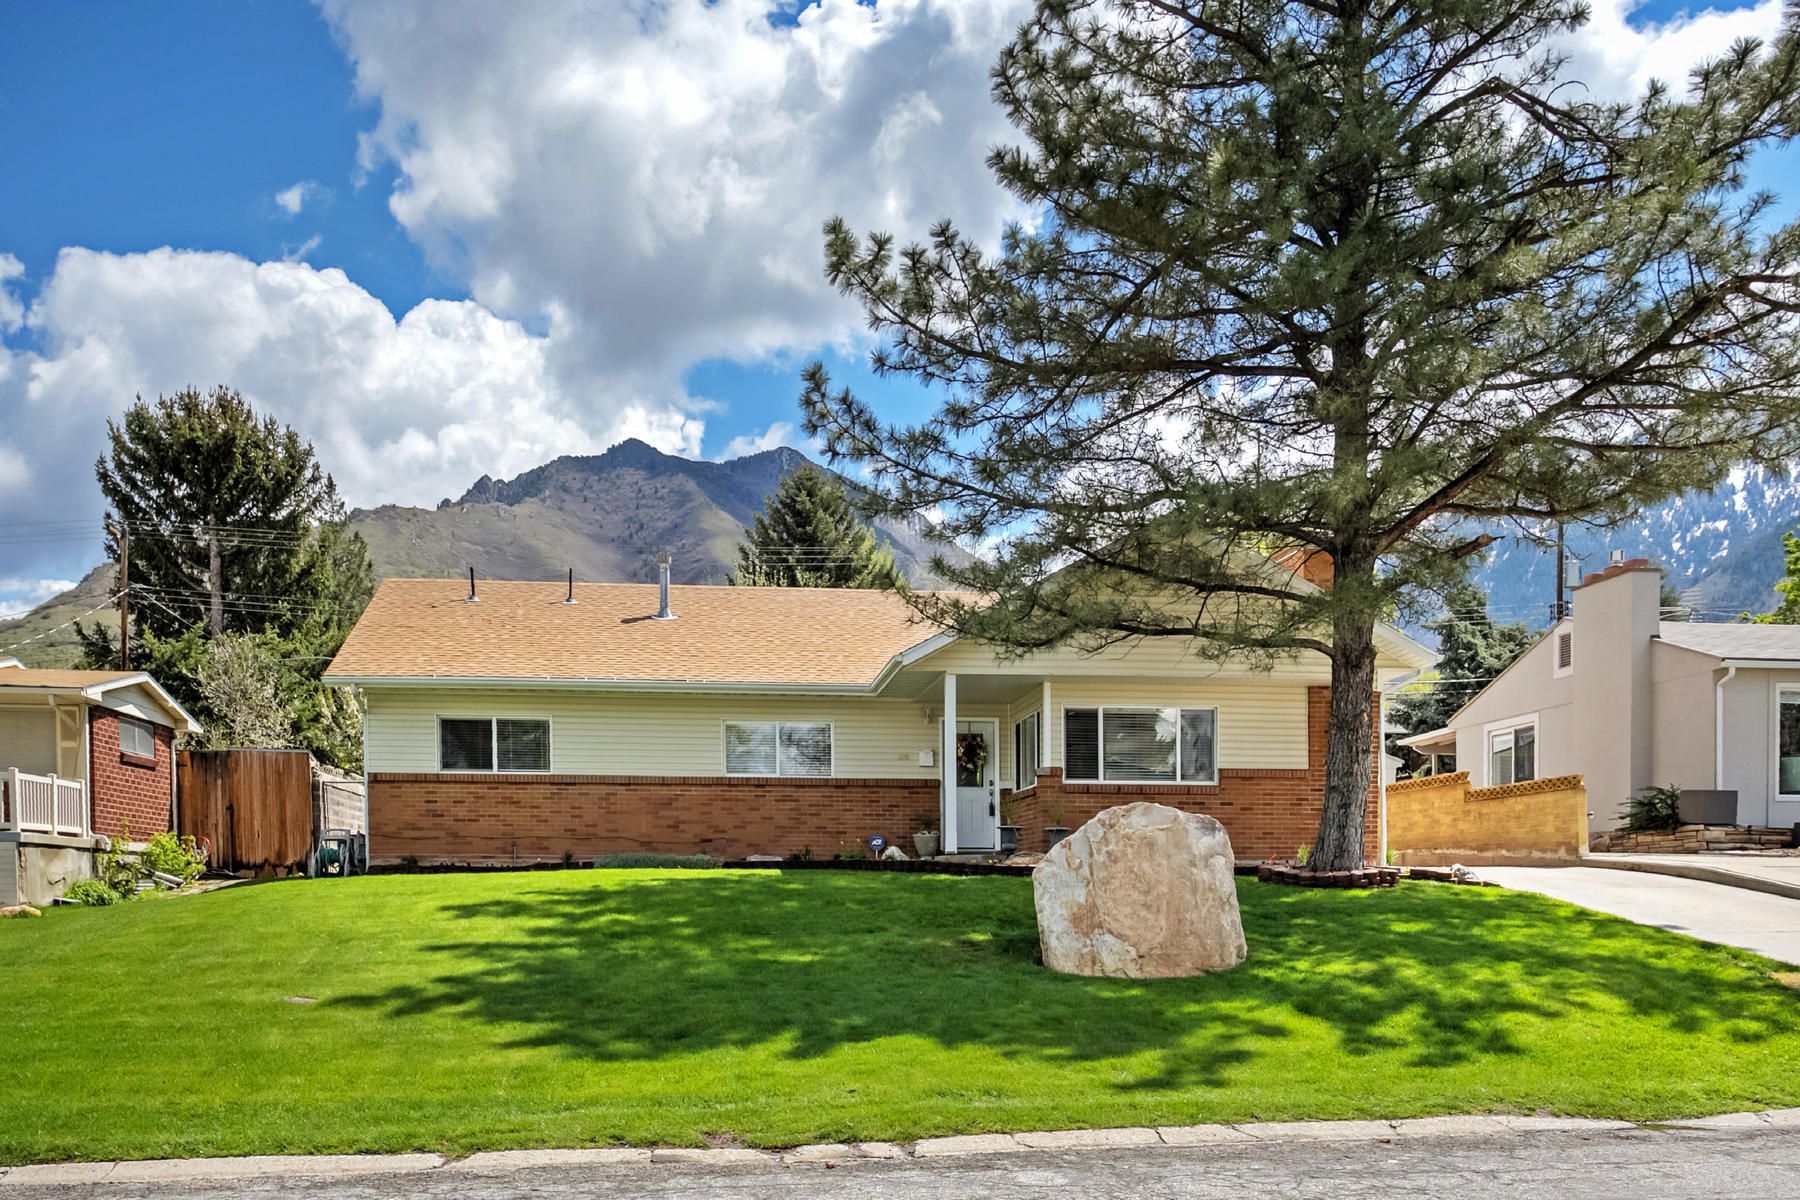 Additional photo for property listing at Rare Olympus Cove 6 Bedroom Rambler 4081 S Achilles Dr Salt Lake City, Utah 84124 United States